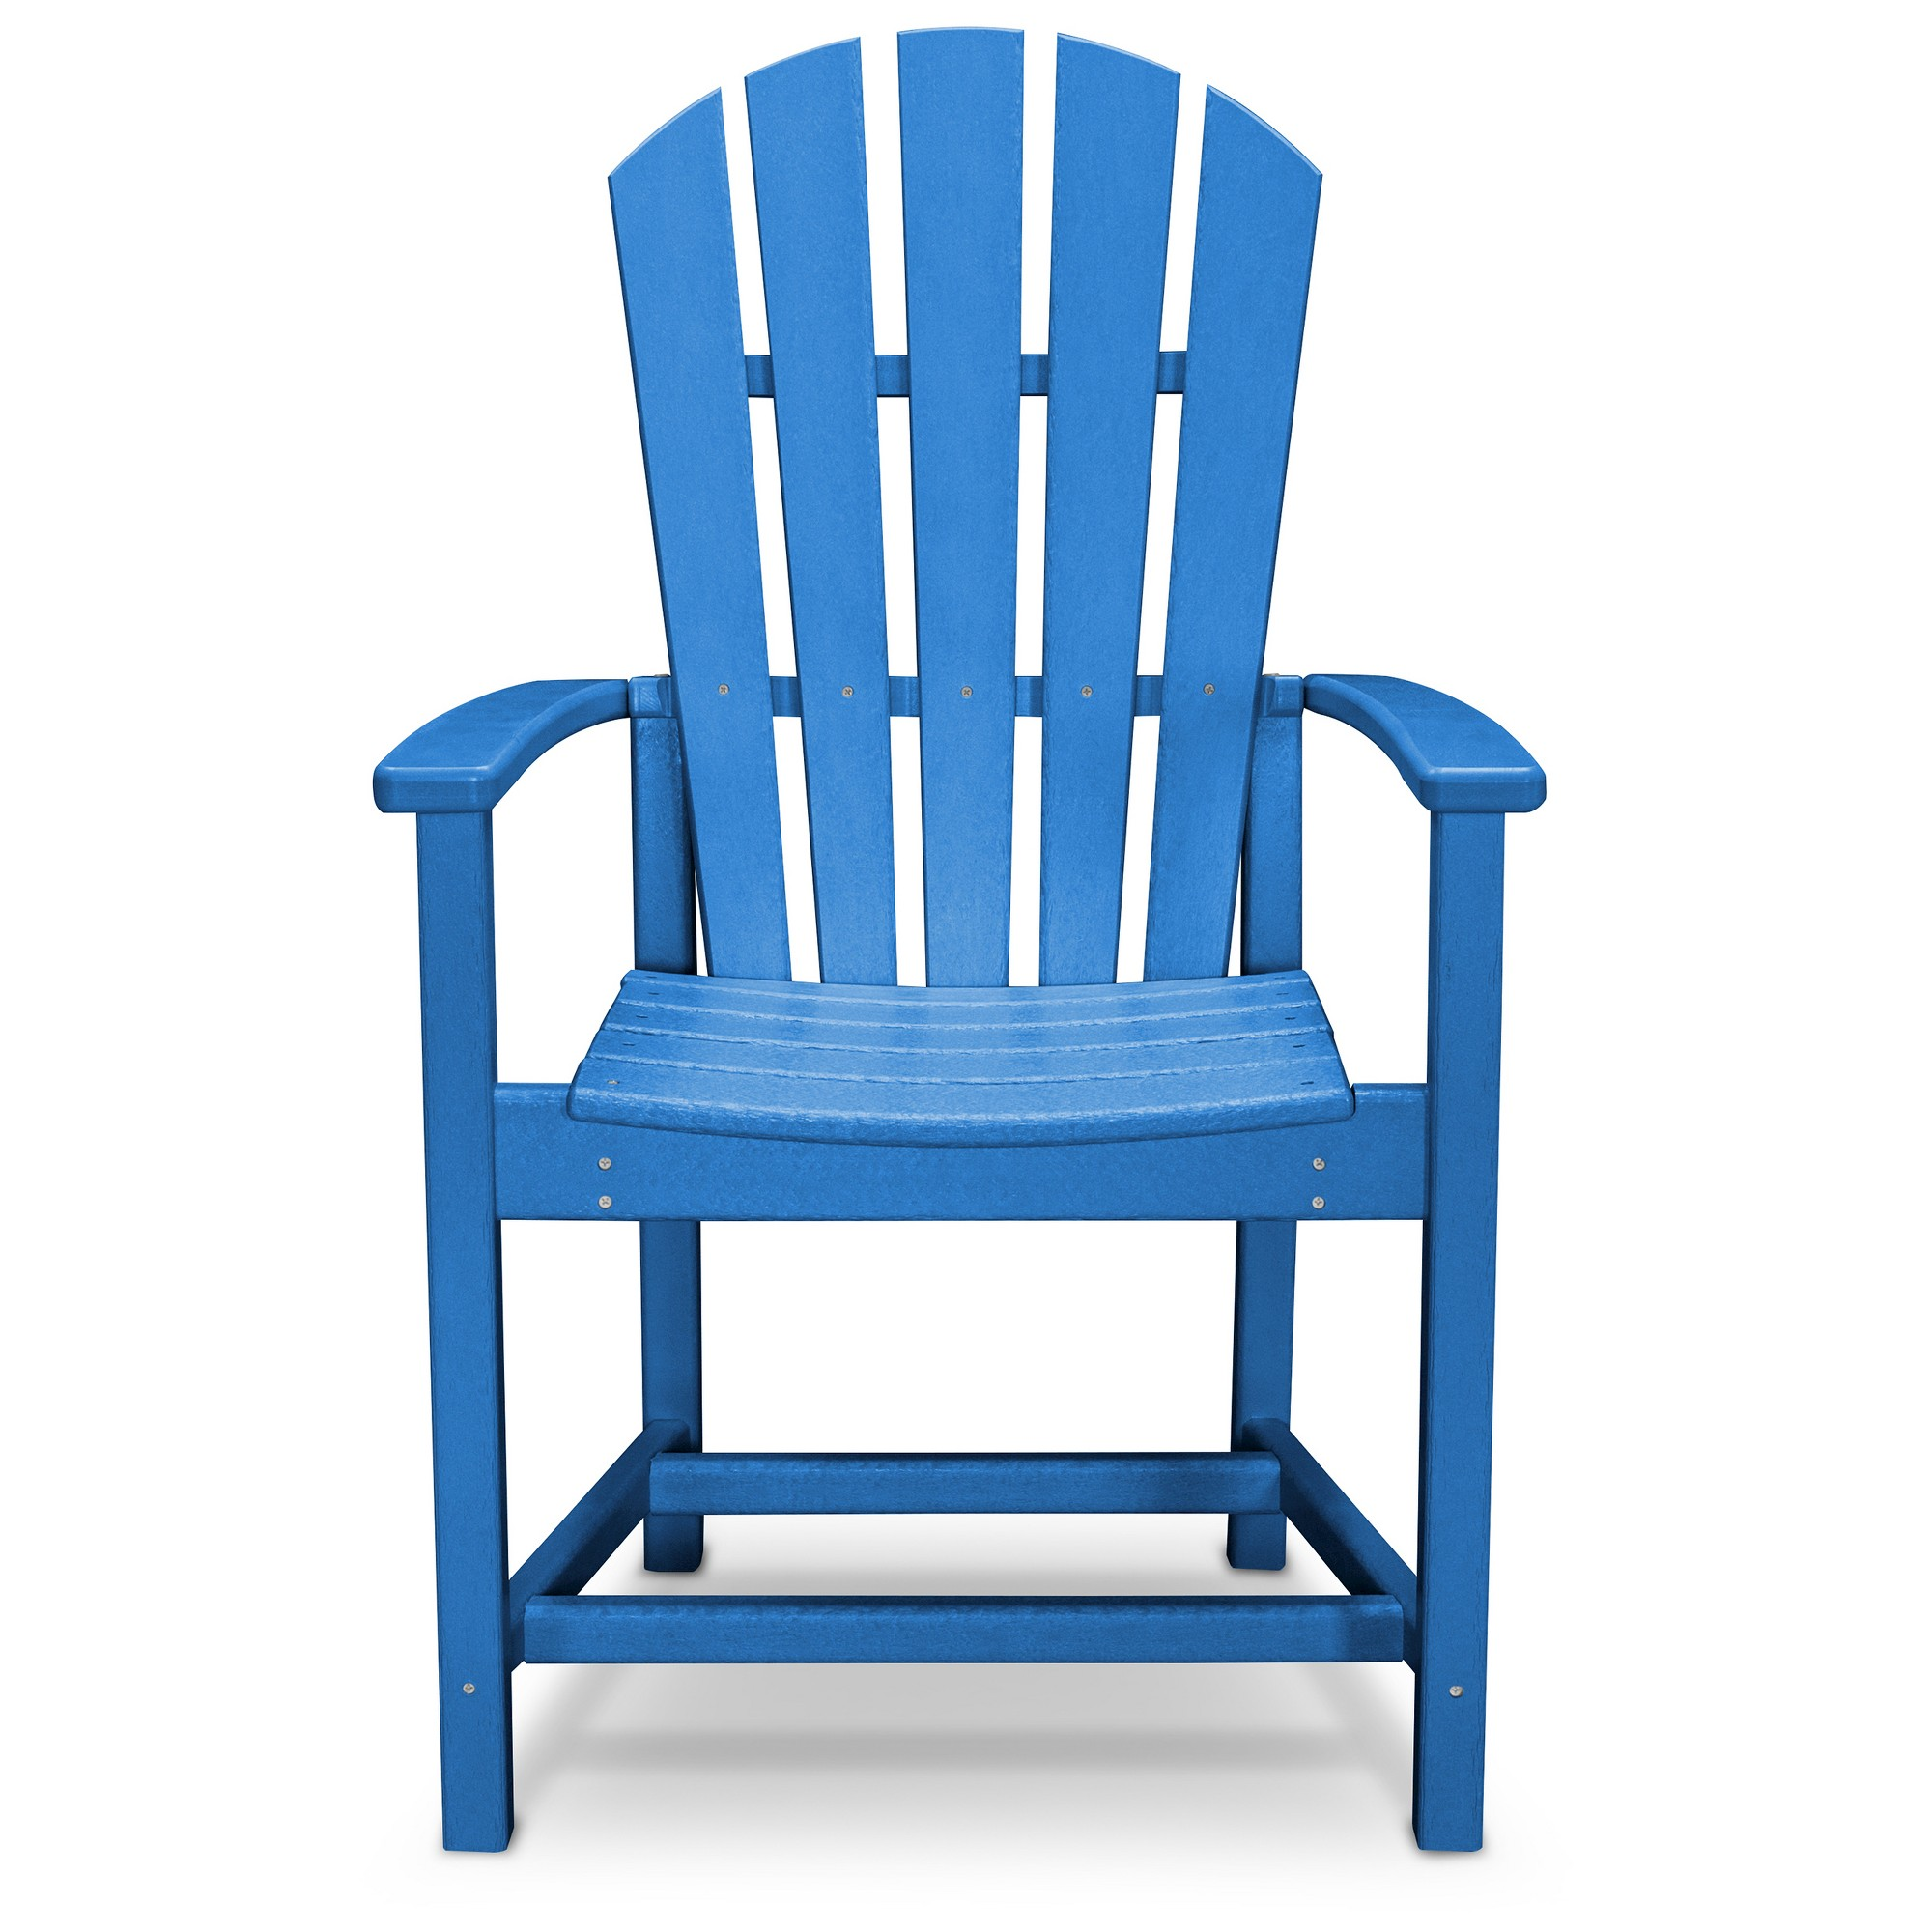 Enjoyable Polywood St Croix Pacific Blue Patio Adirondack Dining Chair Gamerscity Chair Design For Home Gamerscityorg